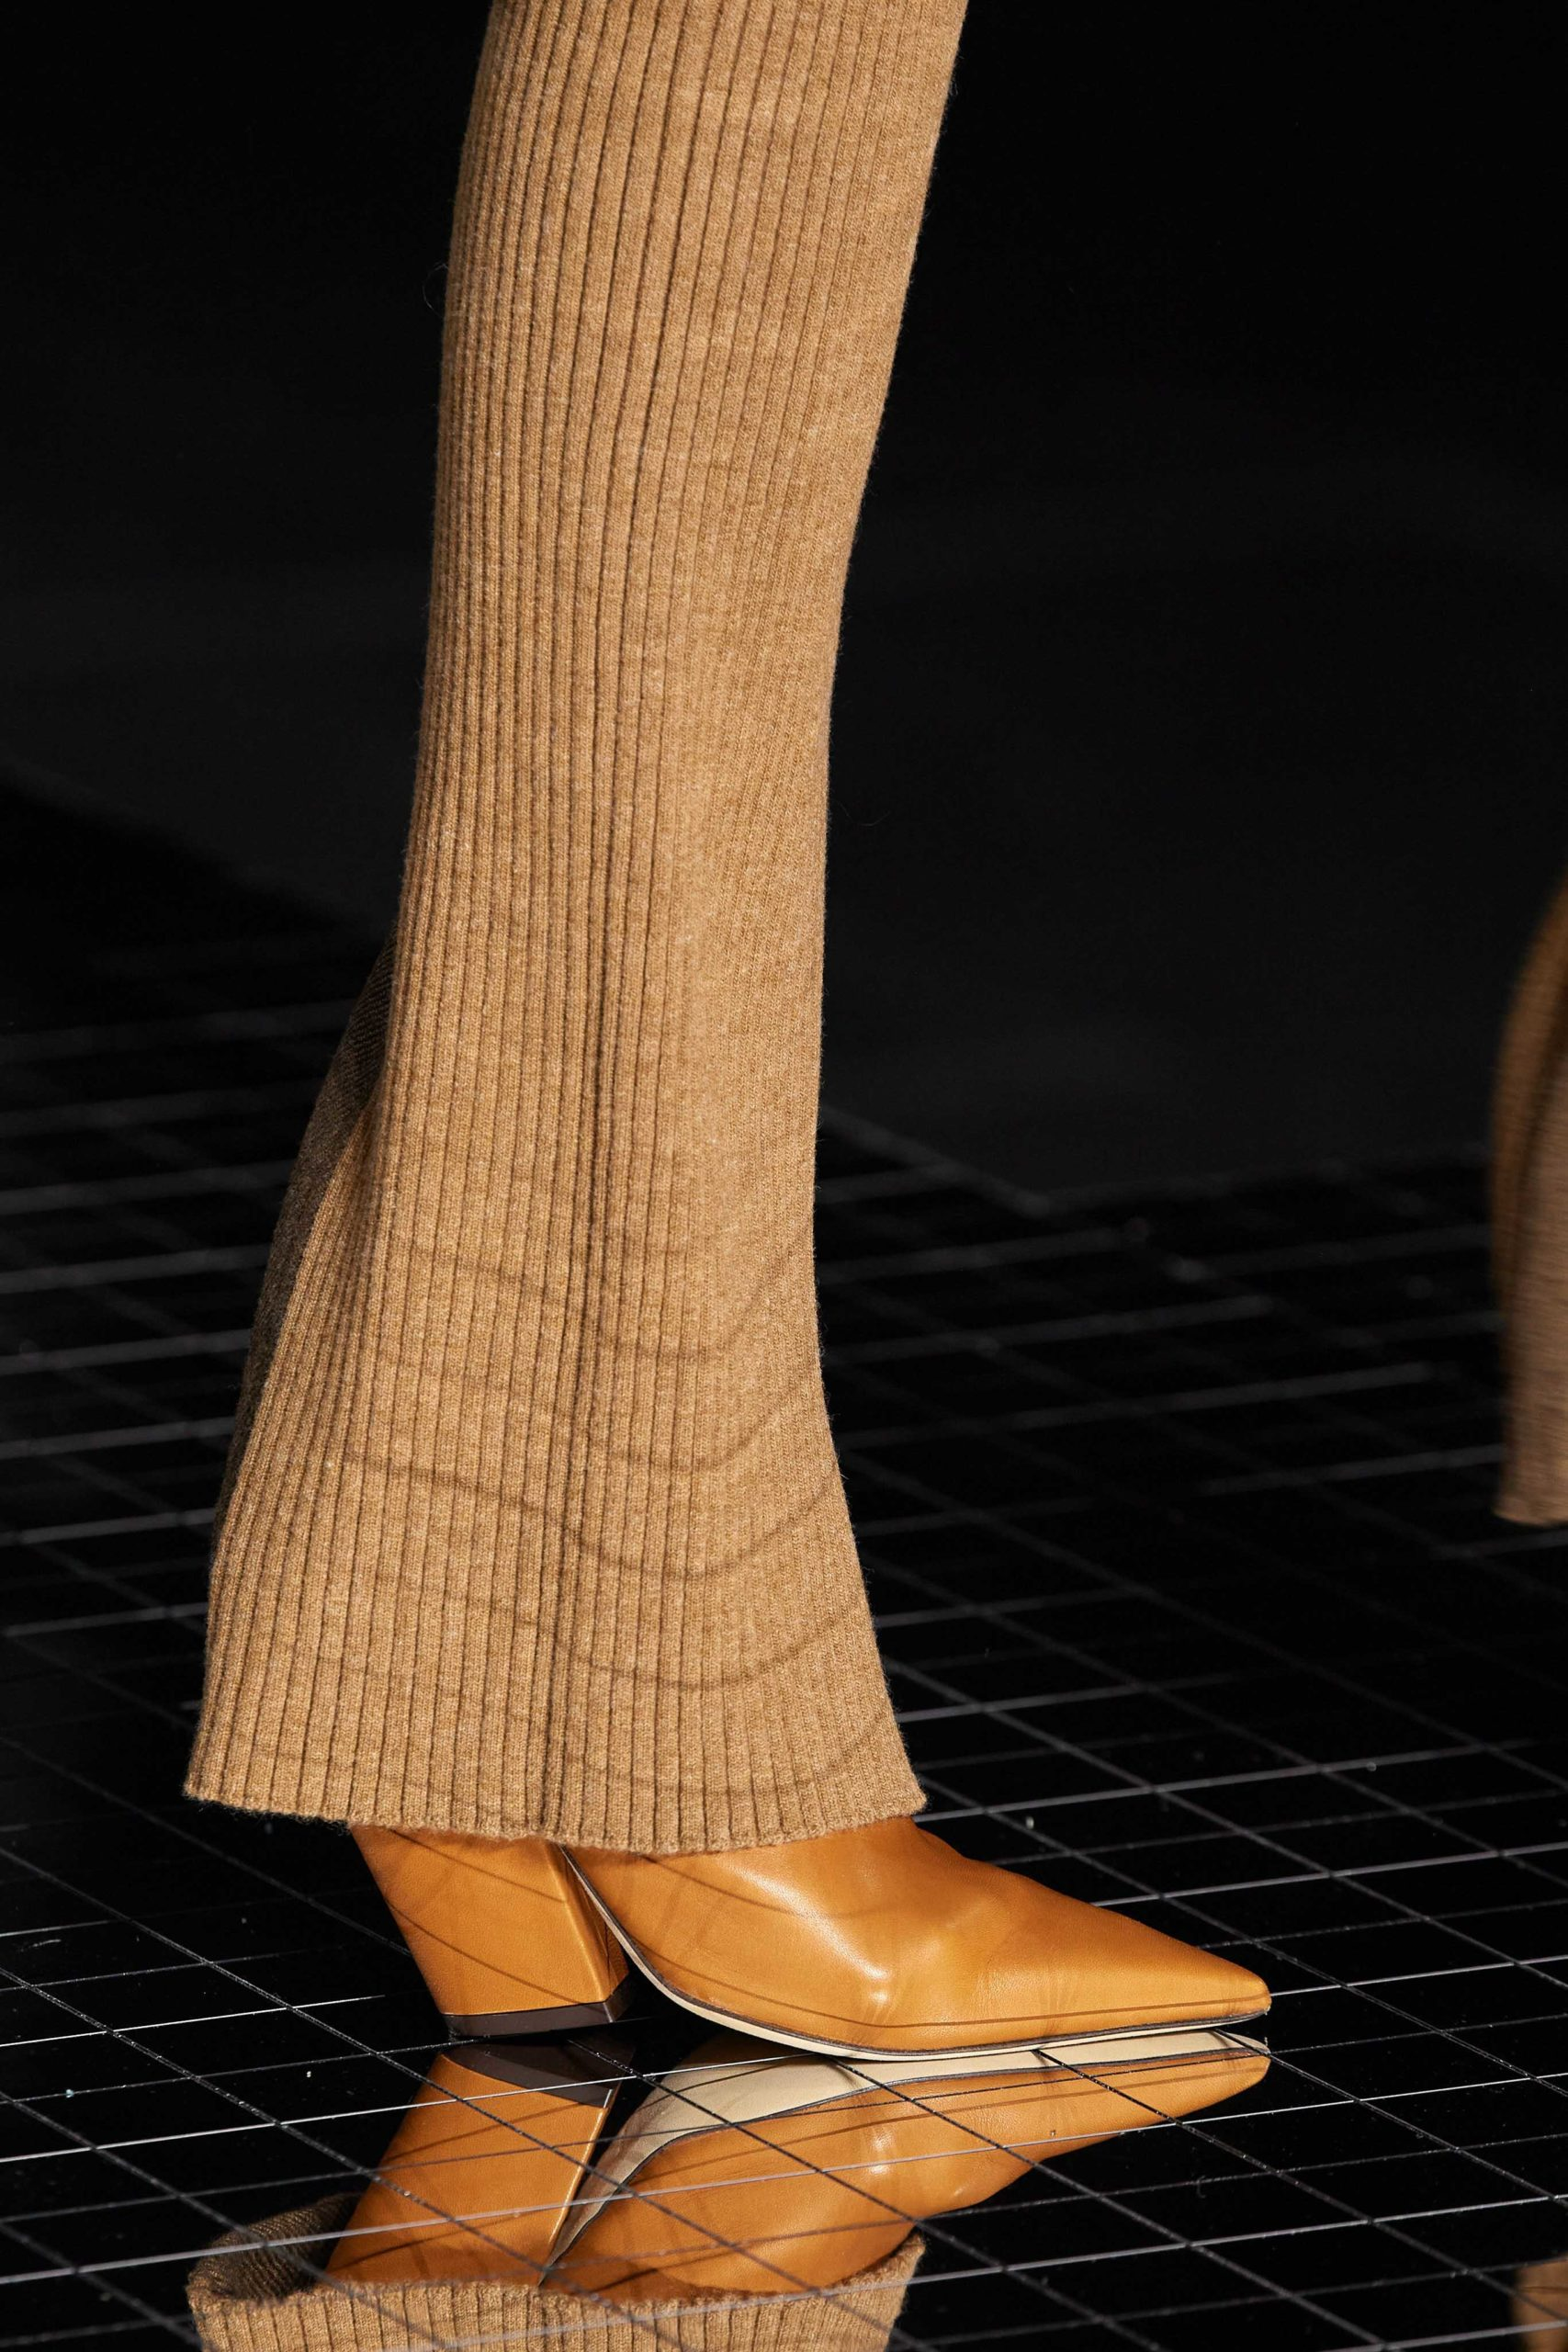 Burberry Fall 2020 trends runway report Ready To Wear Vogue details pointed toe boots boots